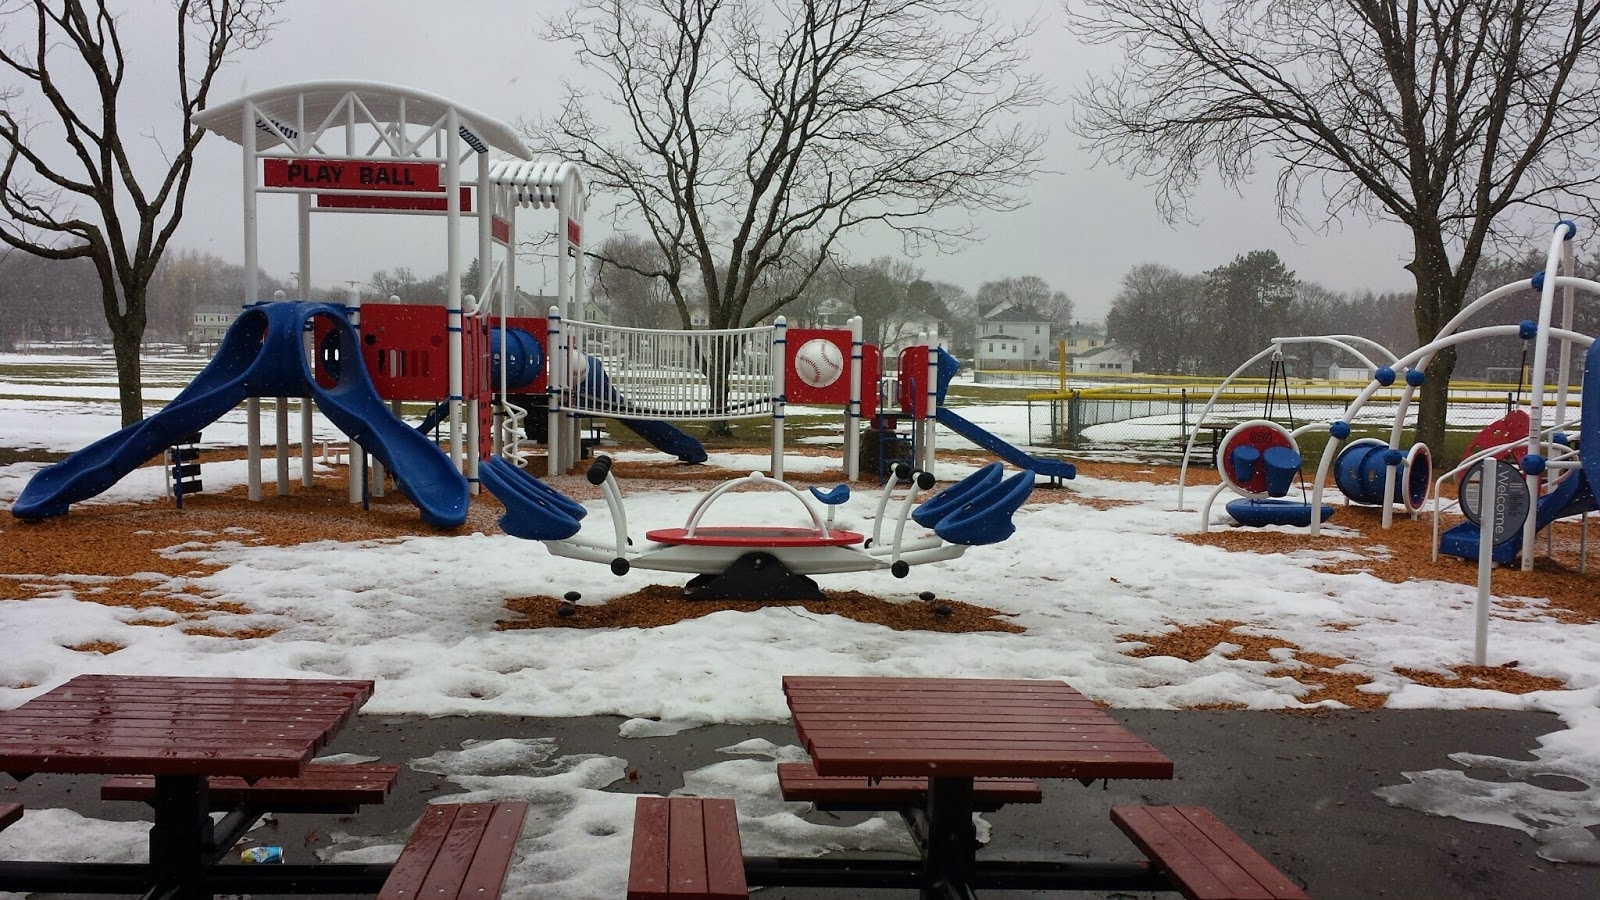 almost ready for kids to play on! (snow melting)